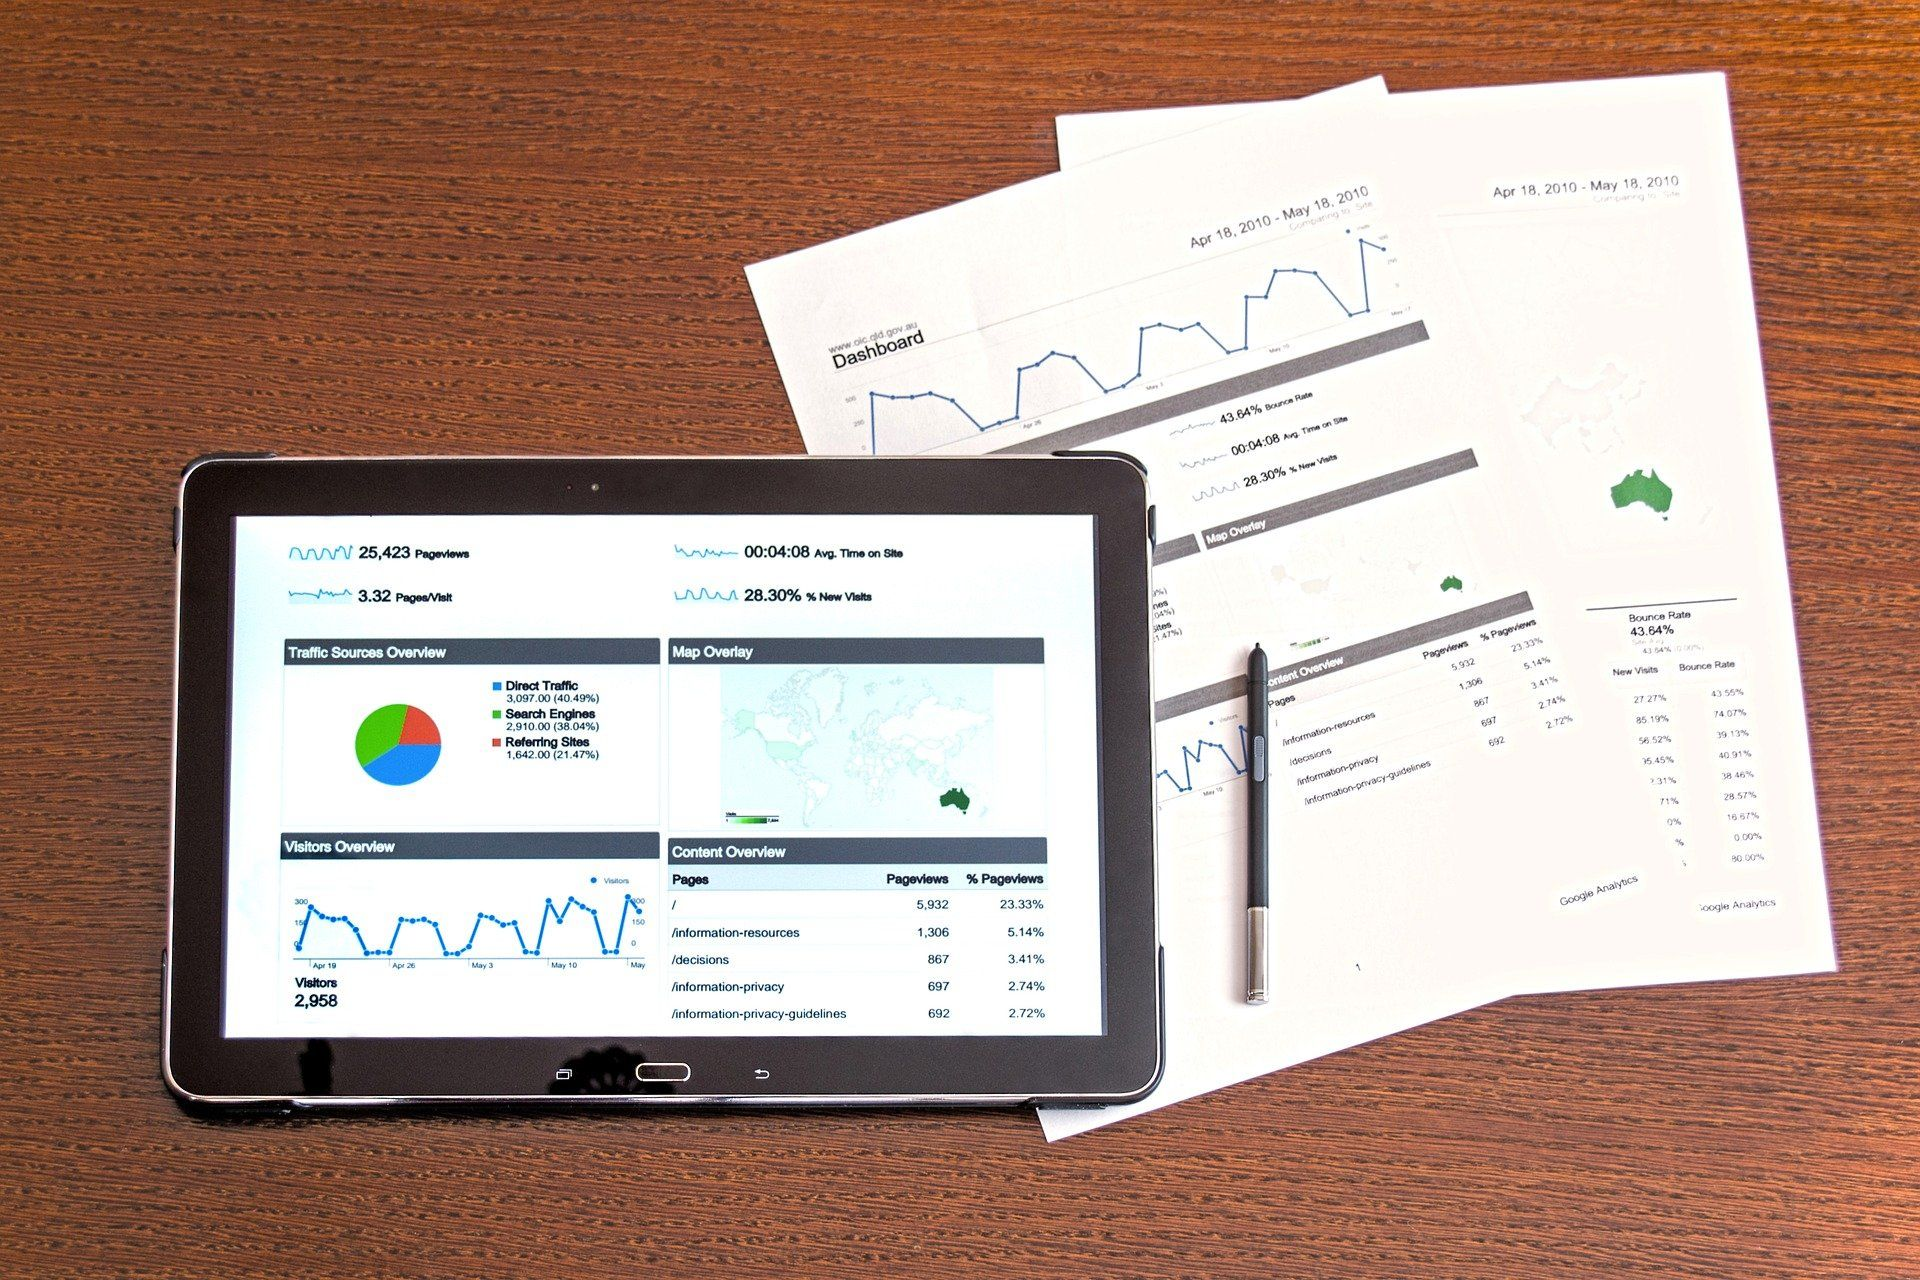 /embedded-data-analytics-and-reporting-tools-that-empowers-business-analysts-p81a338h feature image